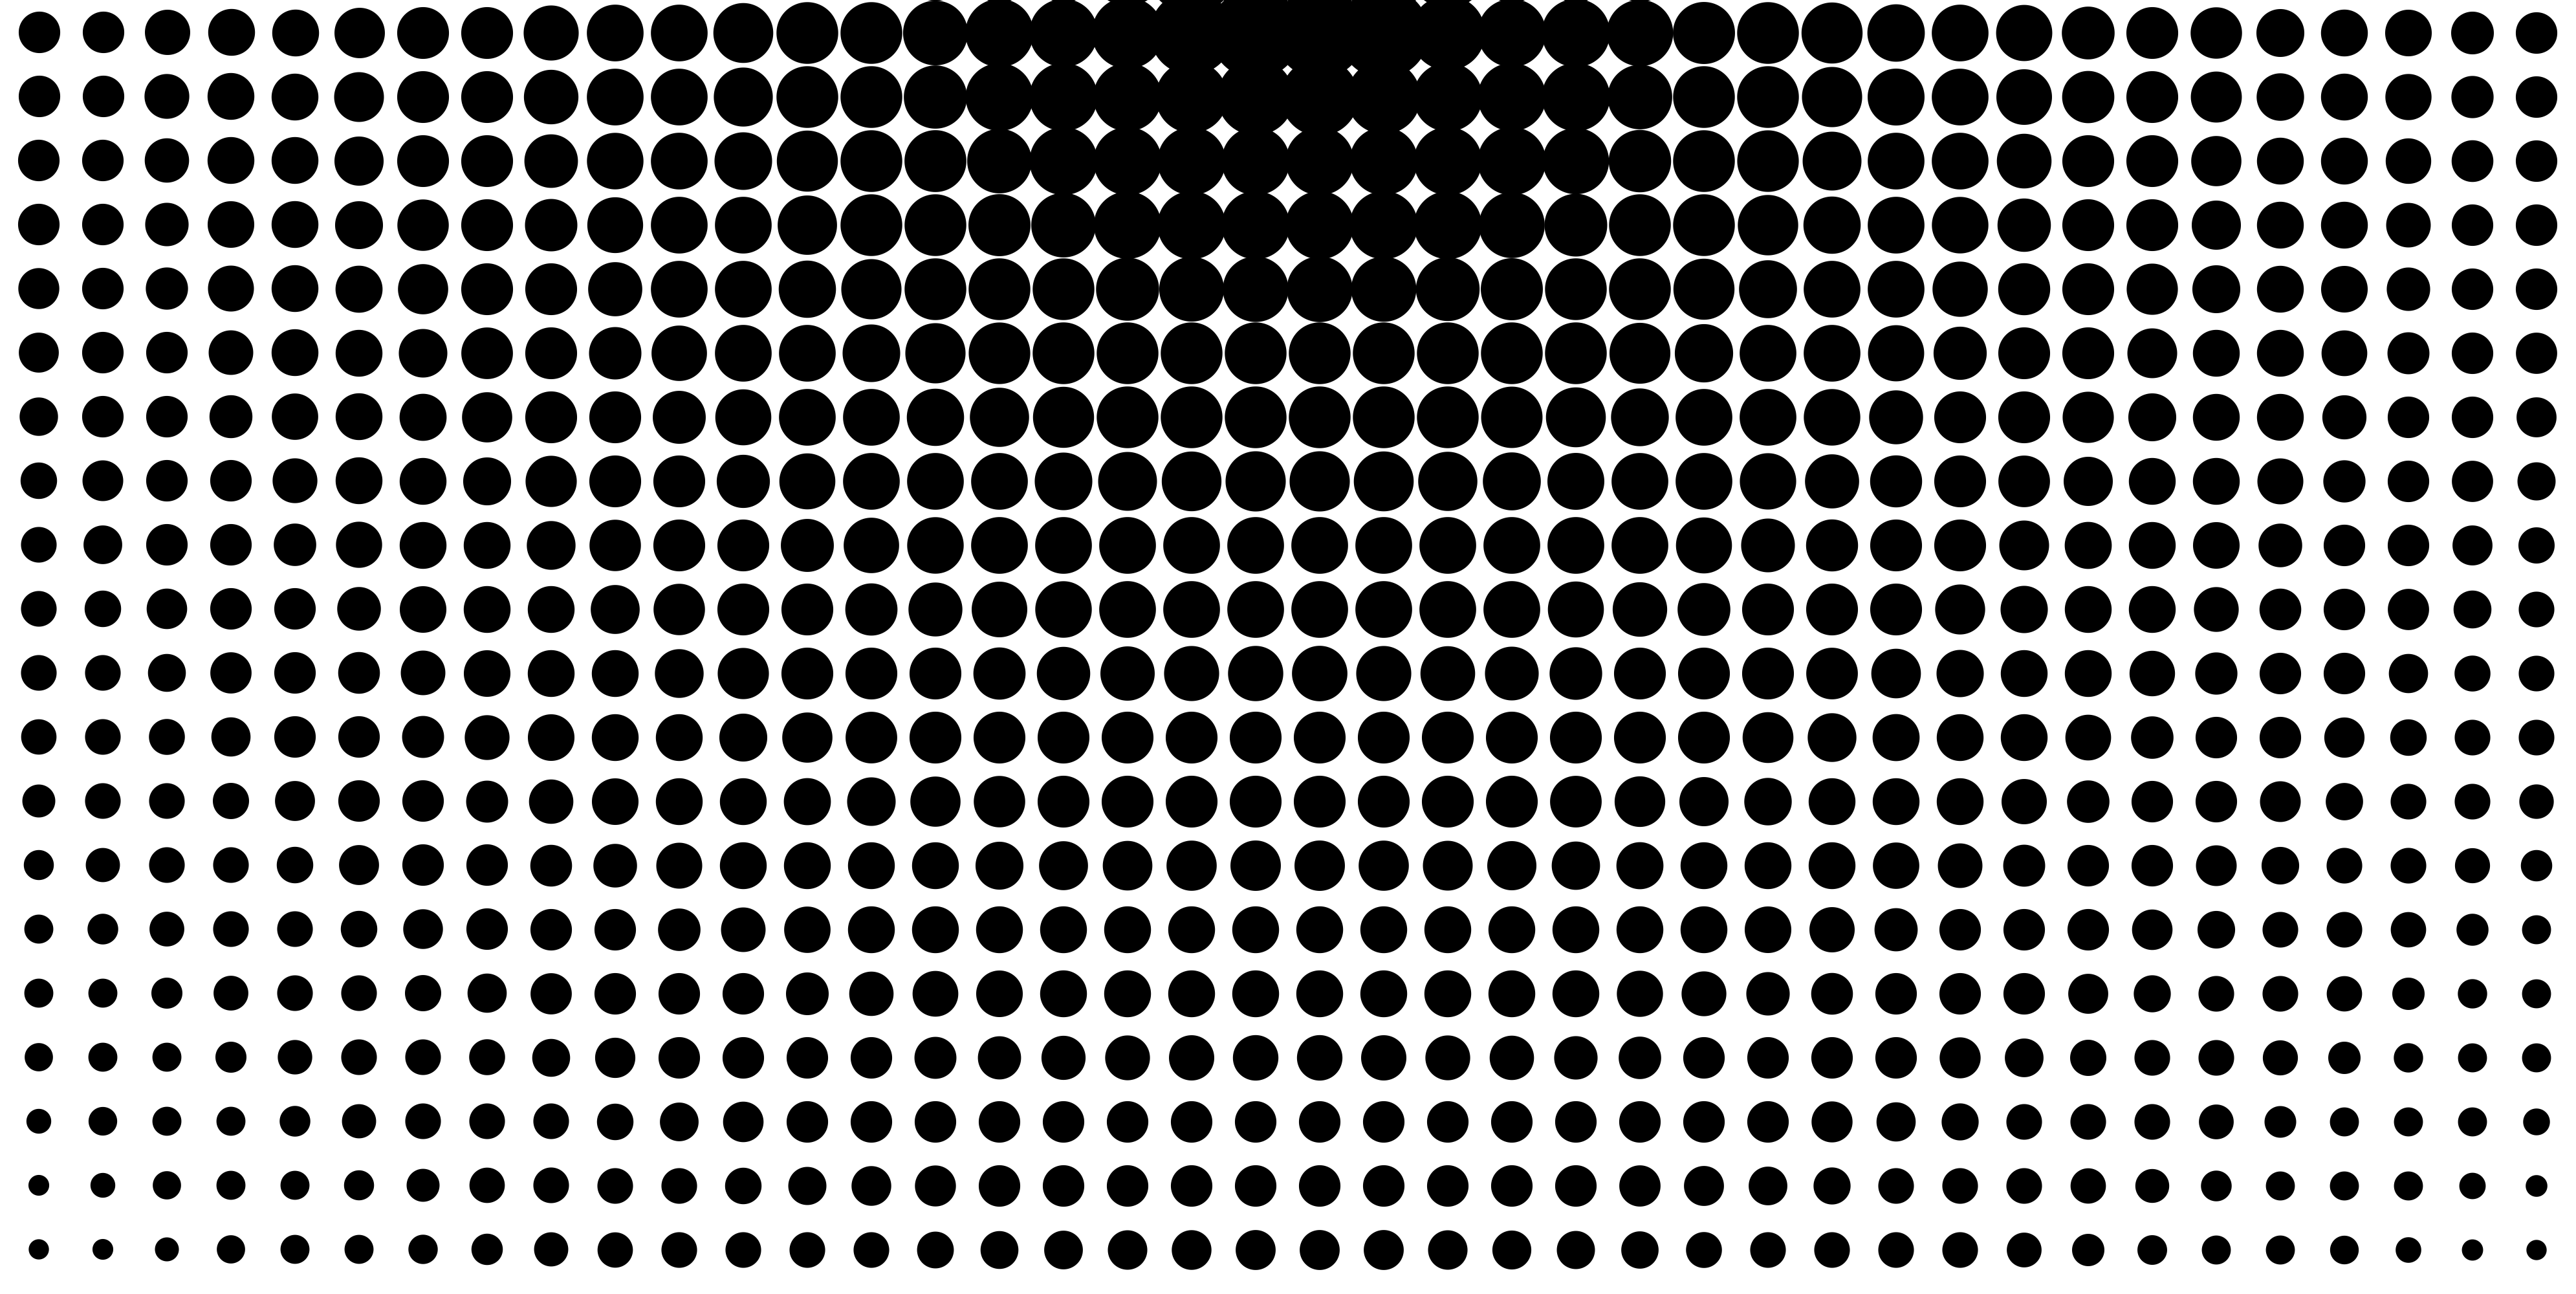 Google Image Result For Http Sweetclipart Com Multisite Sweetclipart Files Halftone Pattern Black White 2 Png Halftone Pattern Halftone Halftone Design